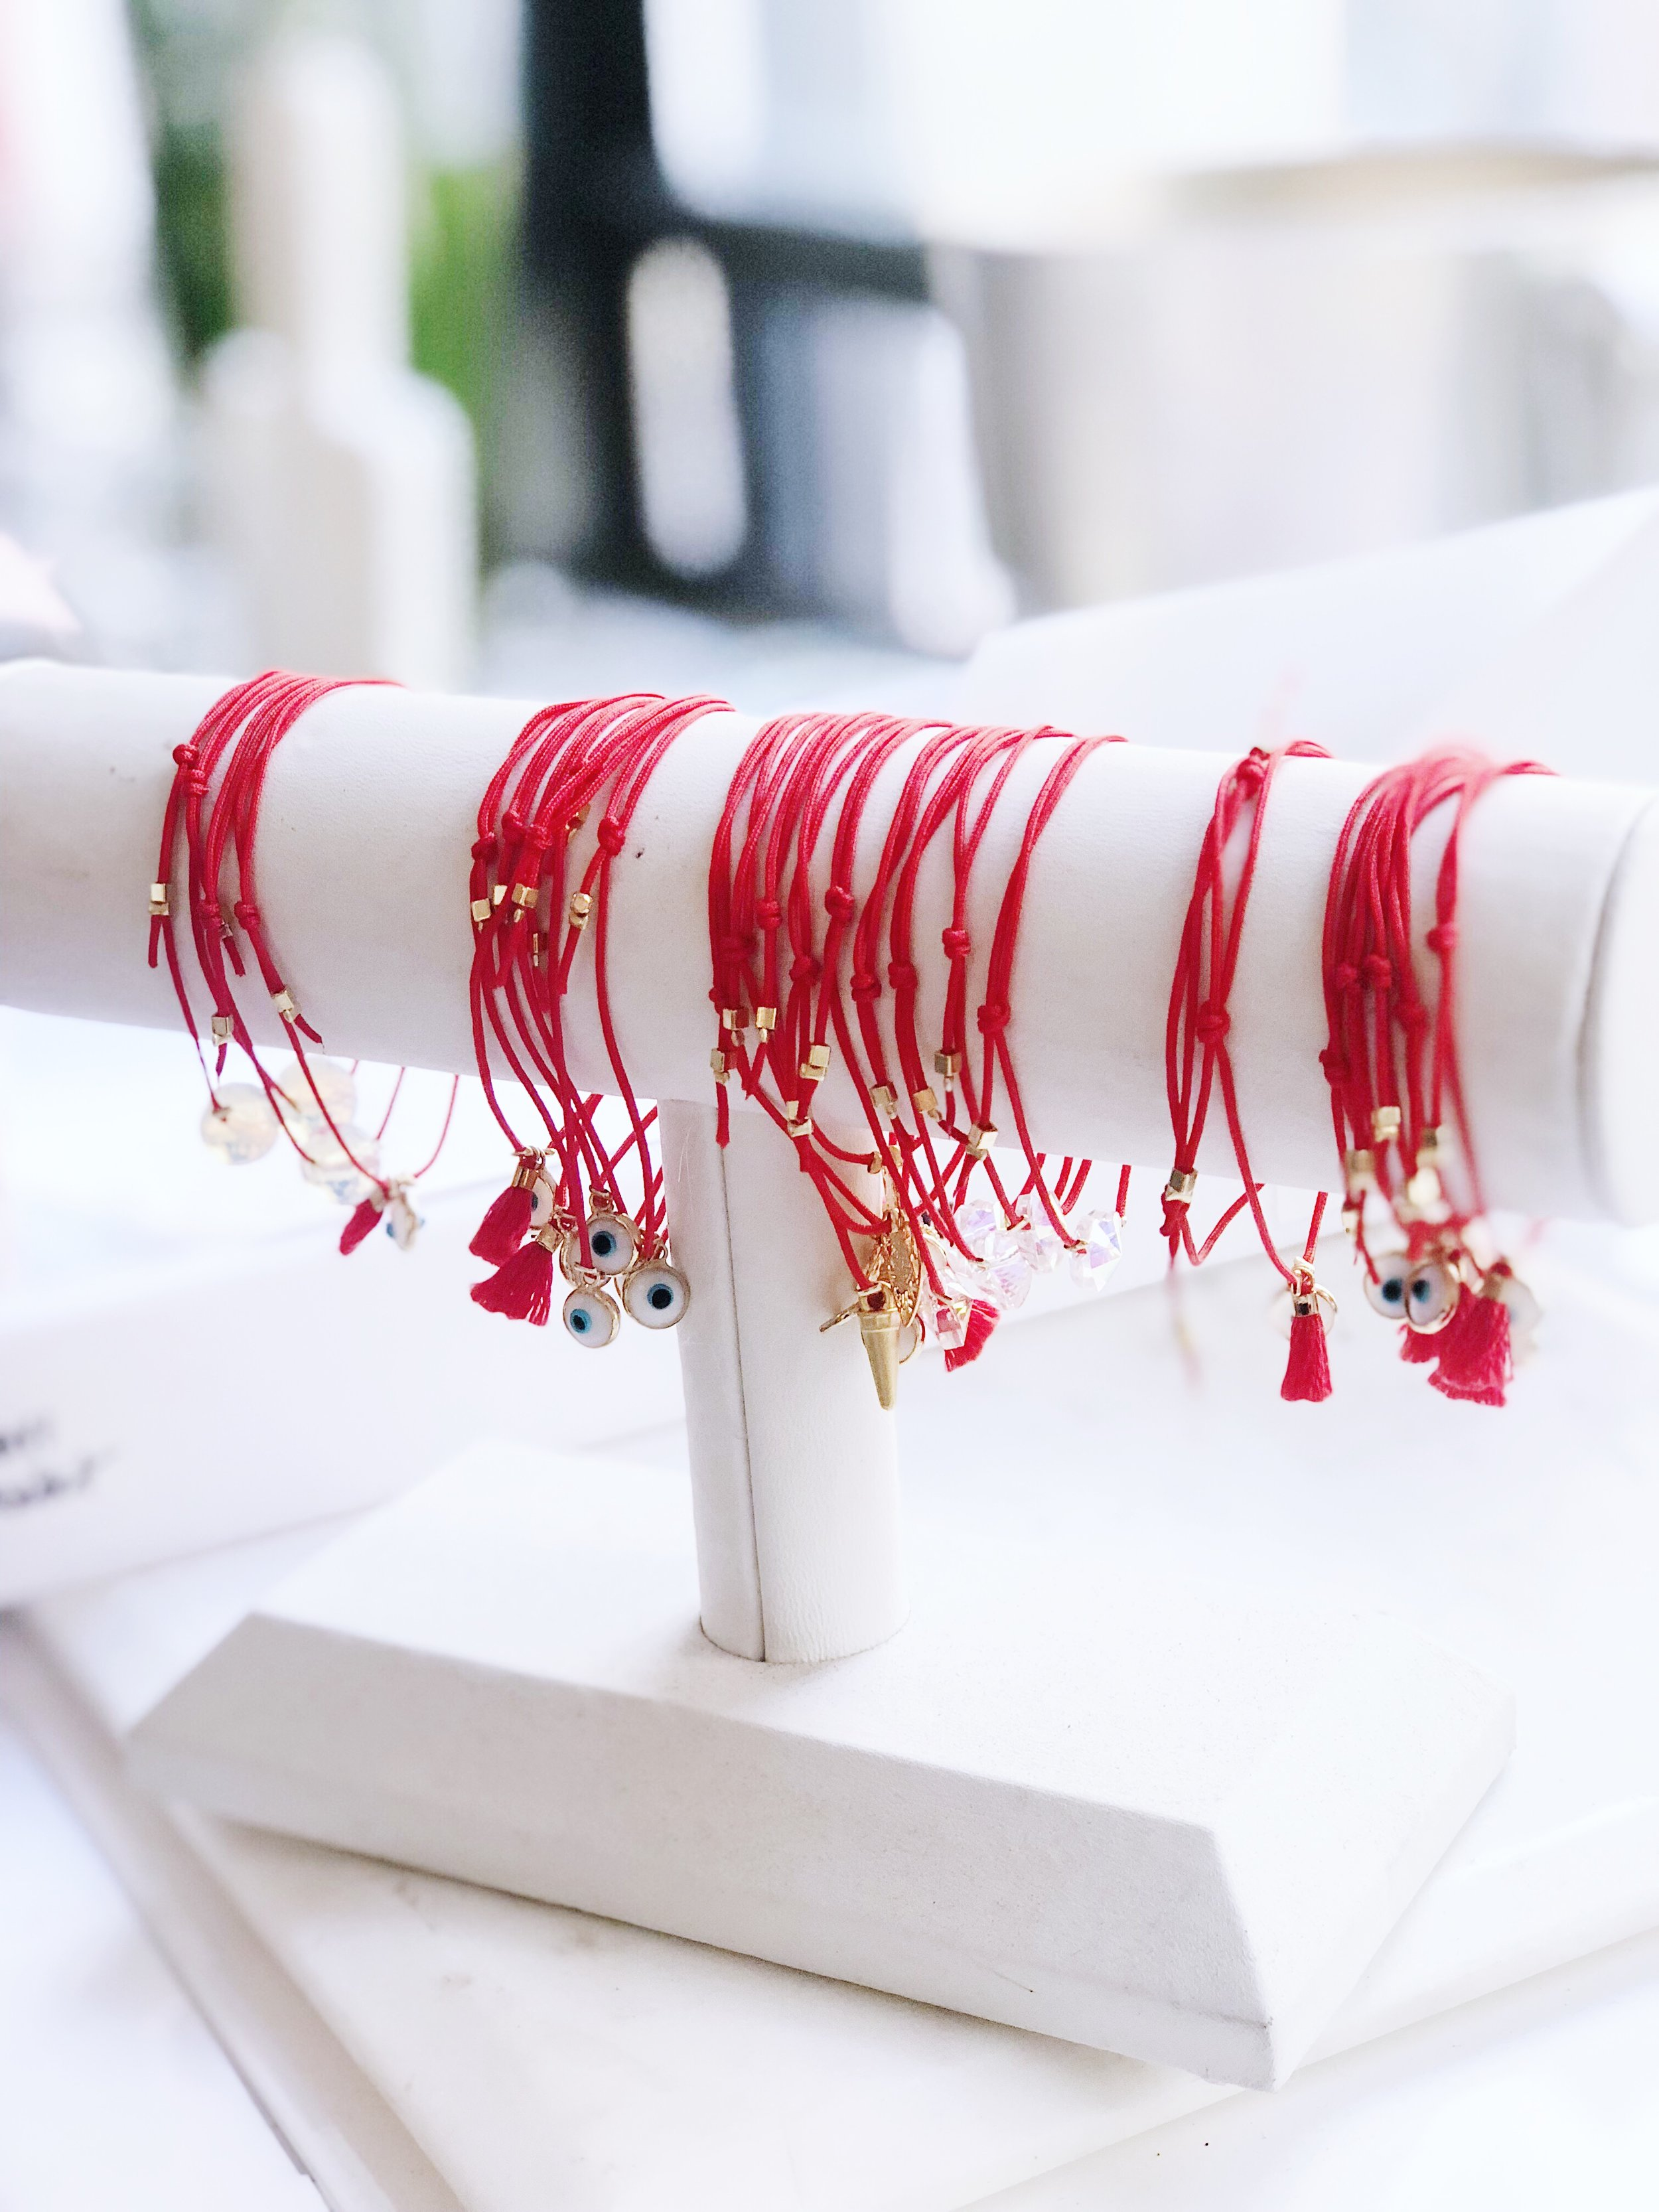 OUR RED STRING JEWELRY - ALL OF OUR RED STRING BRACELETS ARE HANDMADE BY US IN OUR NYC BASED STUDIO. EACH CHARM HAS BEEN HAND SELECTED AND ETHICALLY SOURCED. THEY'RE MADE TO BE WORN FOR PROTECTION AND GOOD LUCK. WE LIKE TO COLLECT THEM, STACK THEM AND NEVER TAKE THEM OFF. WE ALSO PROMOTE SHARING THEM FROM YOU WRIST TO SOMEONE WHO MIGHT NEED IT.WE SHOWER IN THEM, WORK OUT IN THEM, SWIM IN THEM AND NEVER TAKE THEM OFF, HOWEVER IF YOU WANT TO KEEP THEM LOOKING FRESH YOU MAY CONSIDER TAKING THEM OFF FOR CERTAIN ACTIVITIES.IF YOU EVER FIND YOURSELF IN NYC, WE INVITE YOU COME TO OUR STUDIO WHERE WE CAN CREATE A CUSTOM BRACELET FOR YOU.